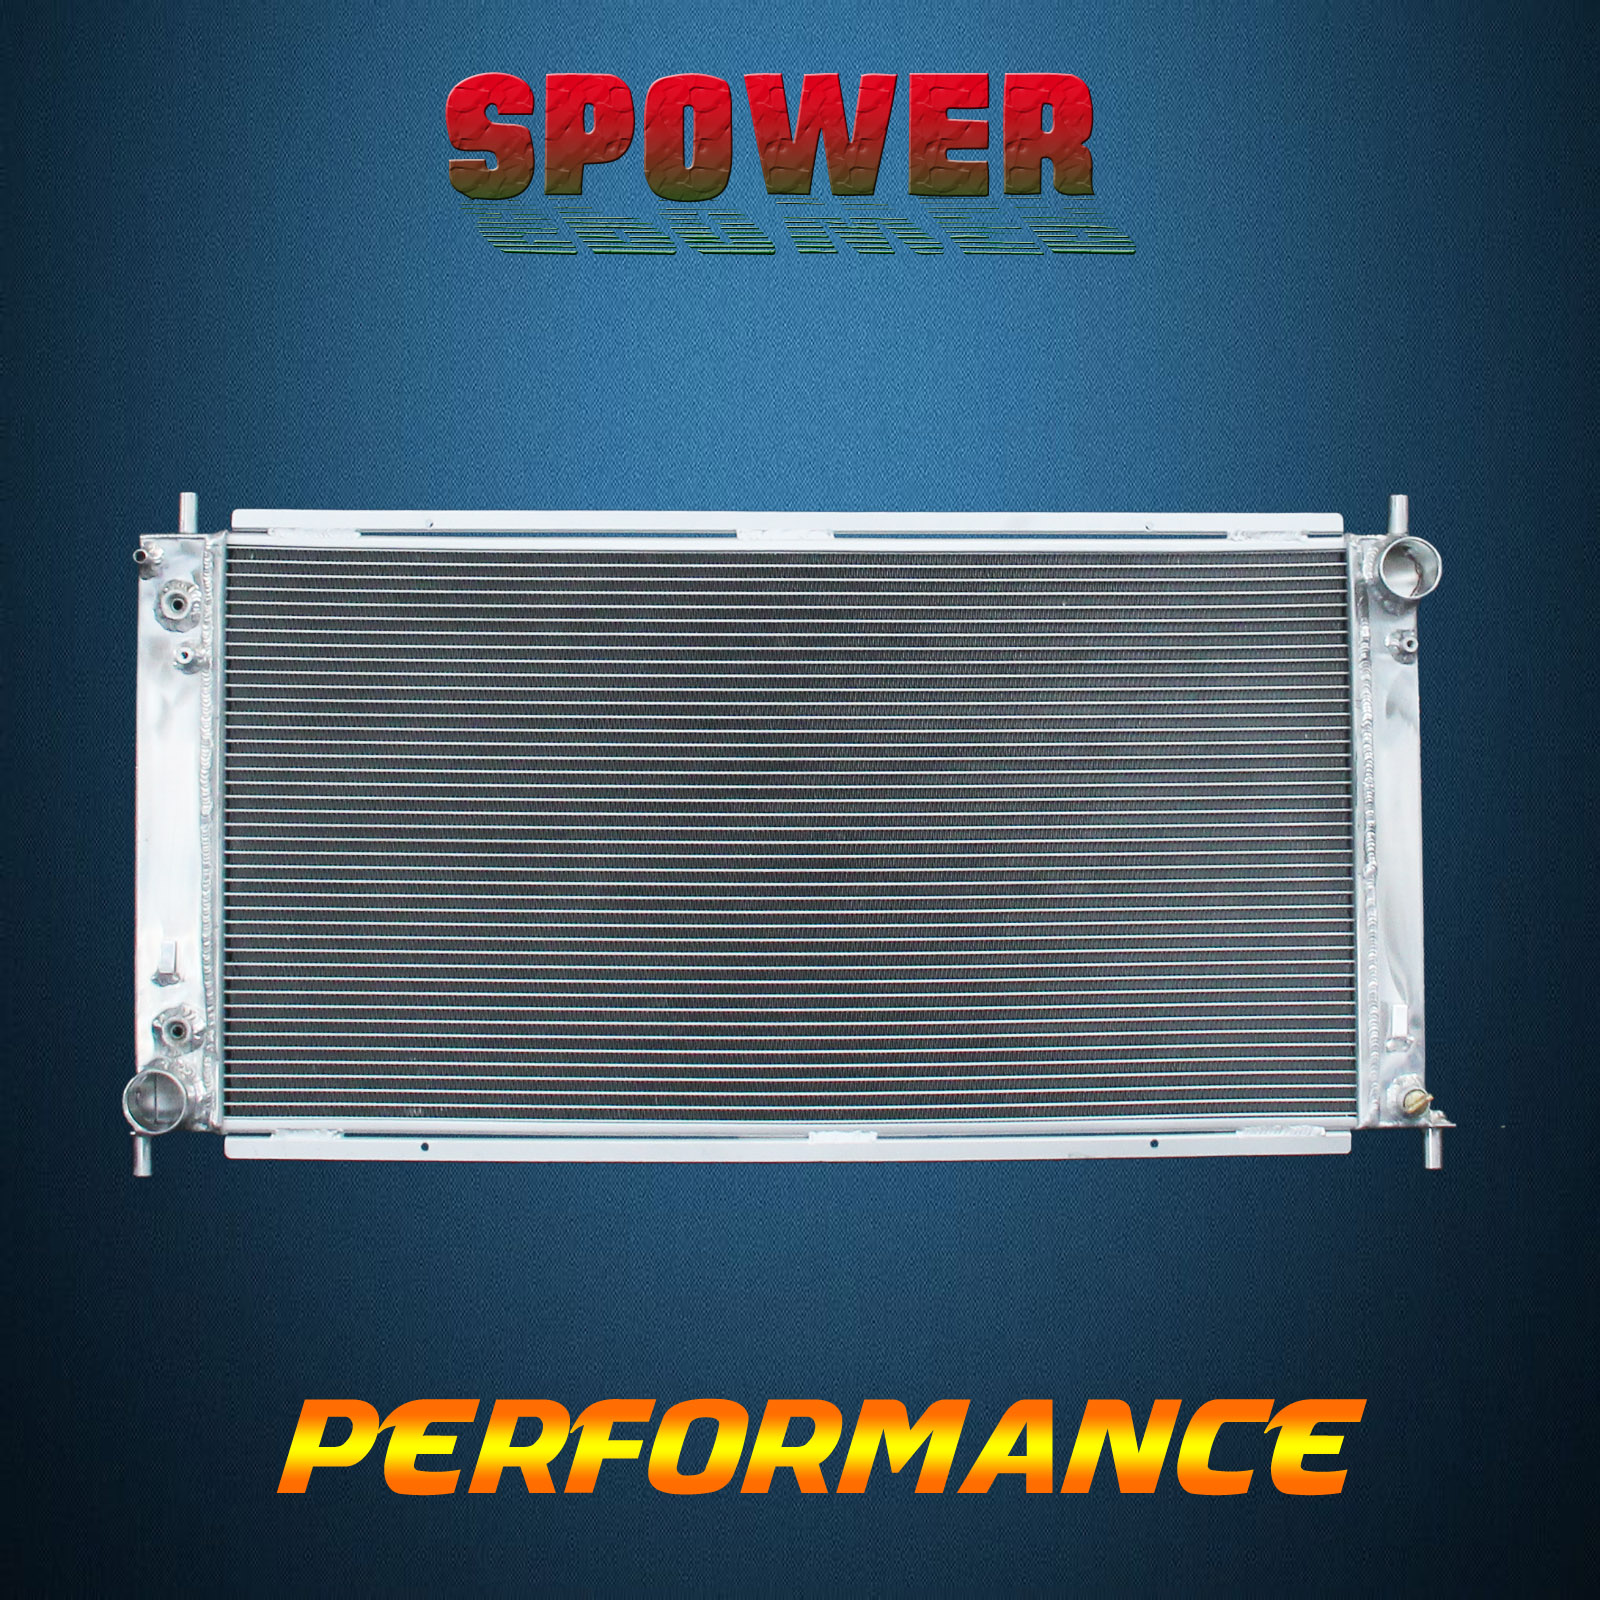 Aluminum Radiator For Ford F-150 Heritage Expedition Blackwood V8 99 ...